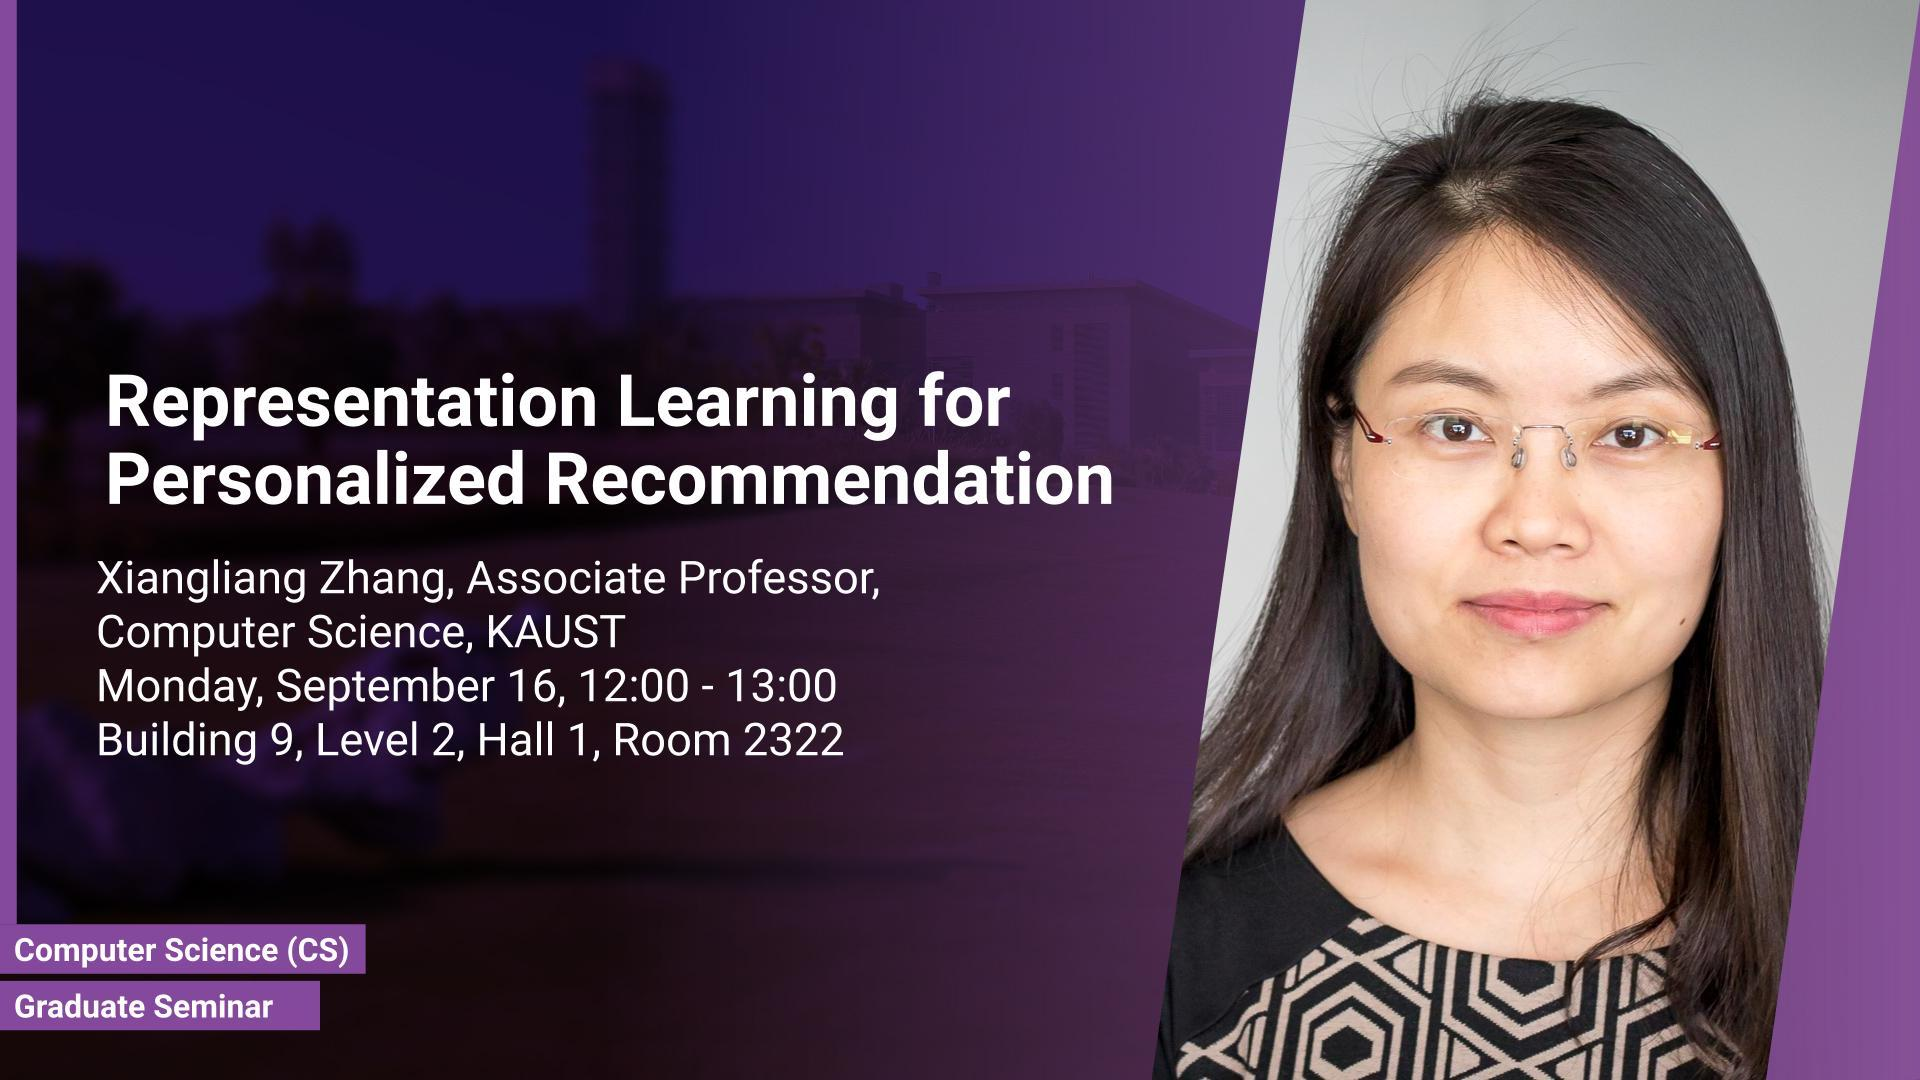 KAUST CEMSE CS Graduate Seminar Xiangliang Zhang Representation Learning for Personalized Recommendation